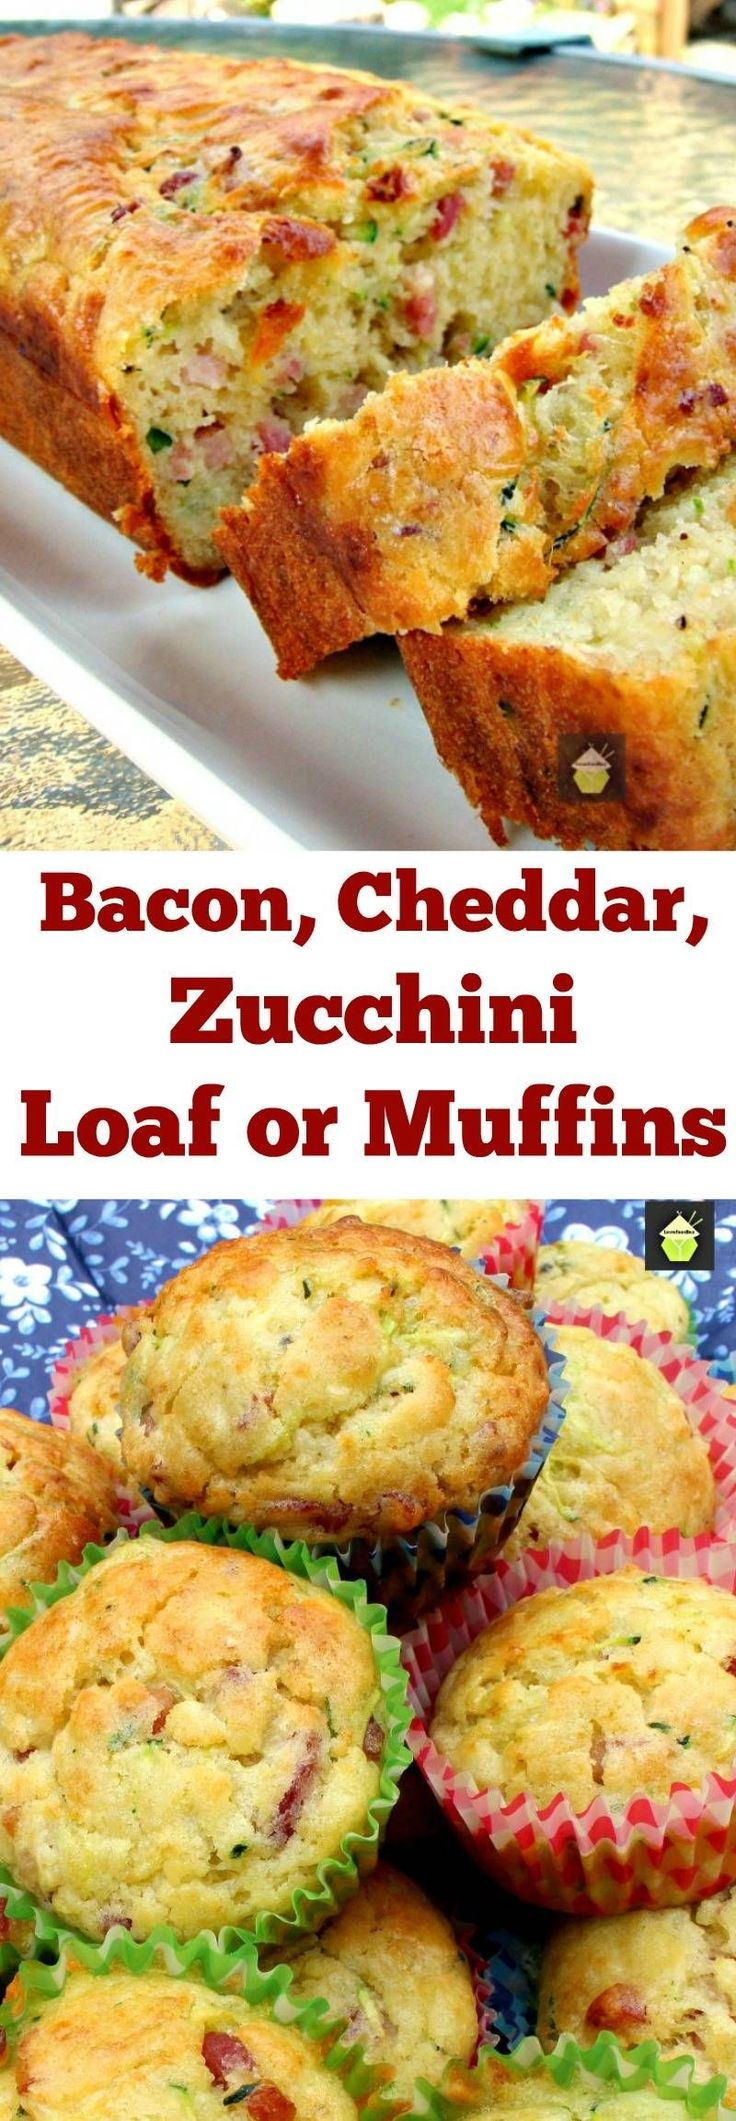 Bacon, Cheddar, Zucchini Bread or Muffins, great for parties, pot lucks and also…